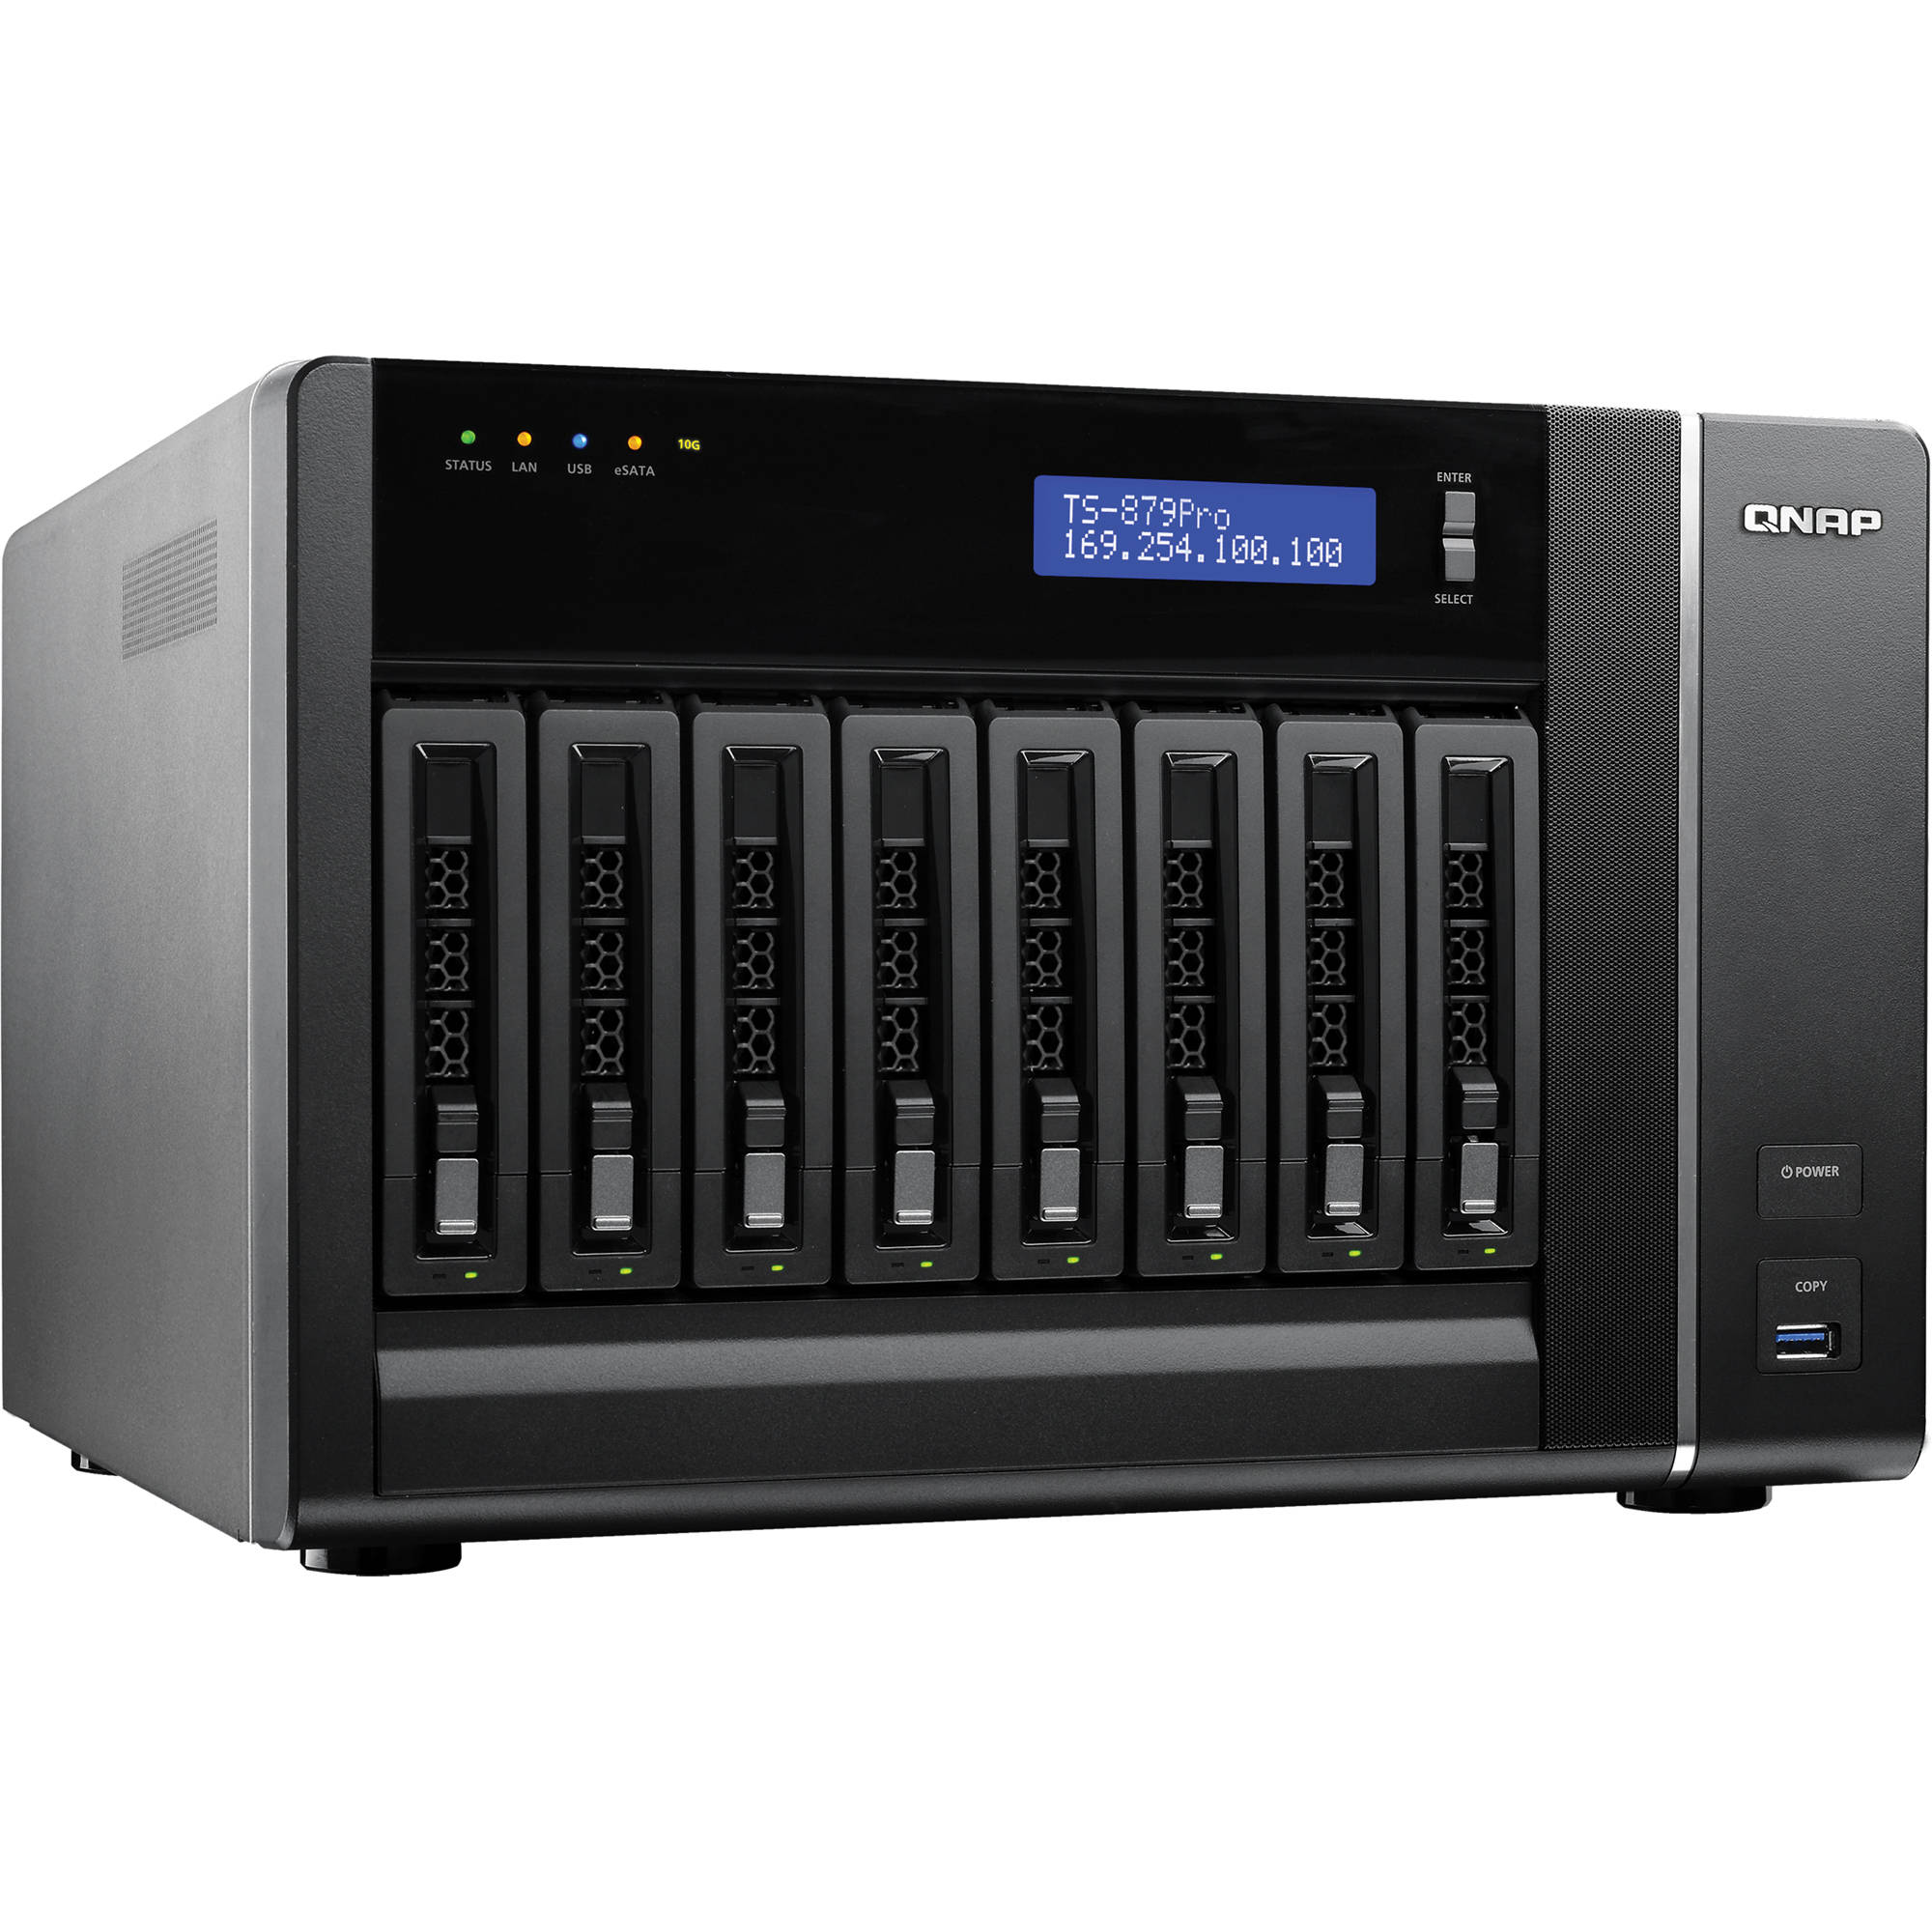 QNAP TS-879 Pro 8 Bay Turbo NAS Server with 10GbE Network Ready Bundle